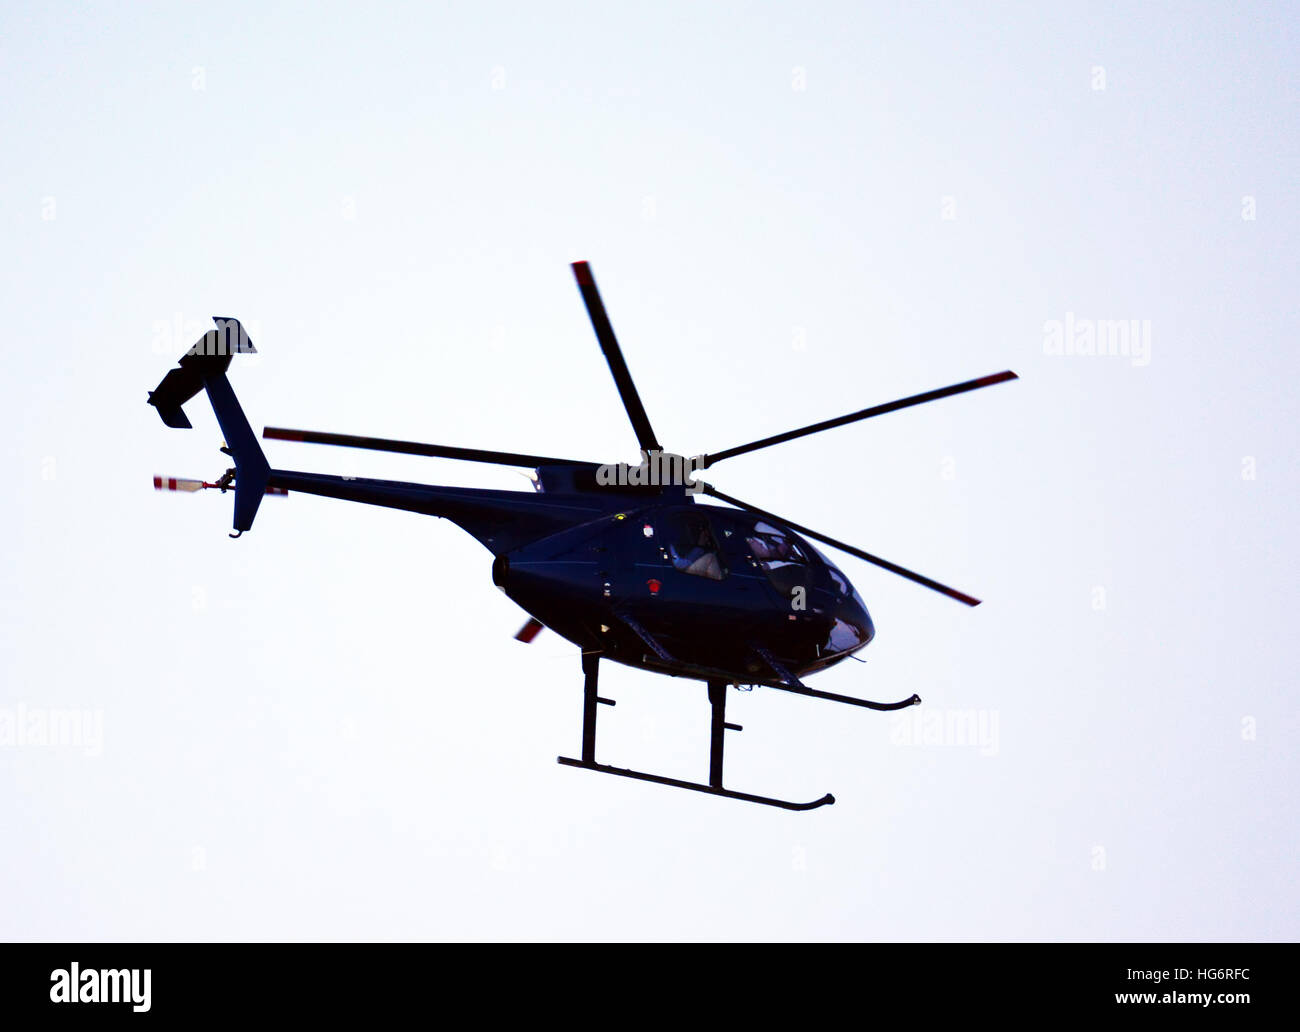 Helicopter silhouette - Stock Image